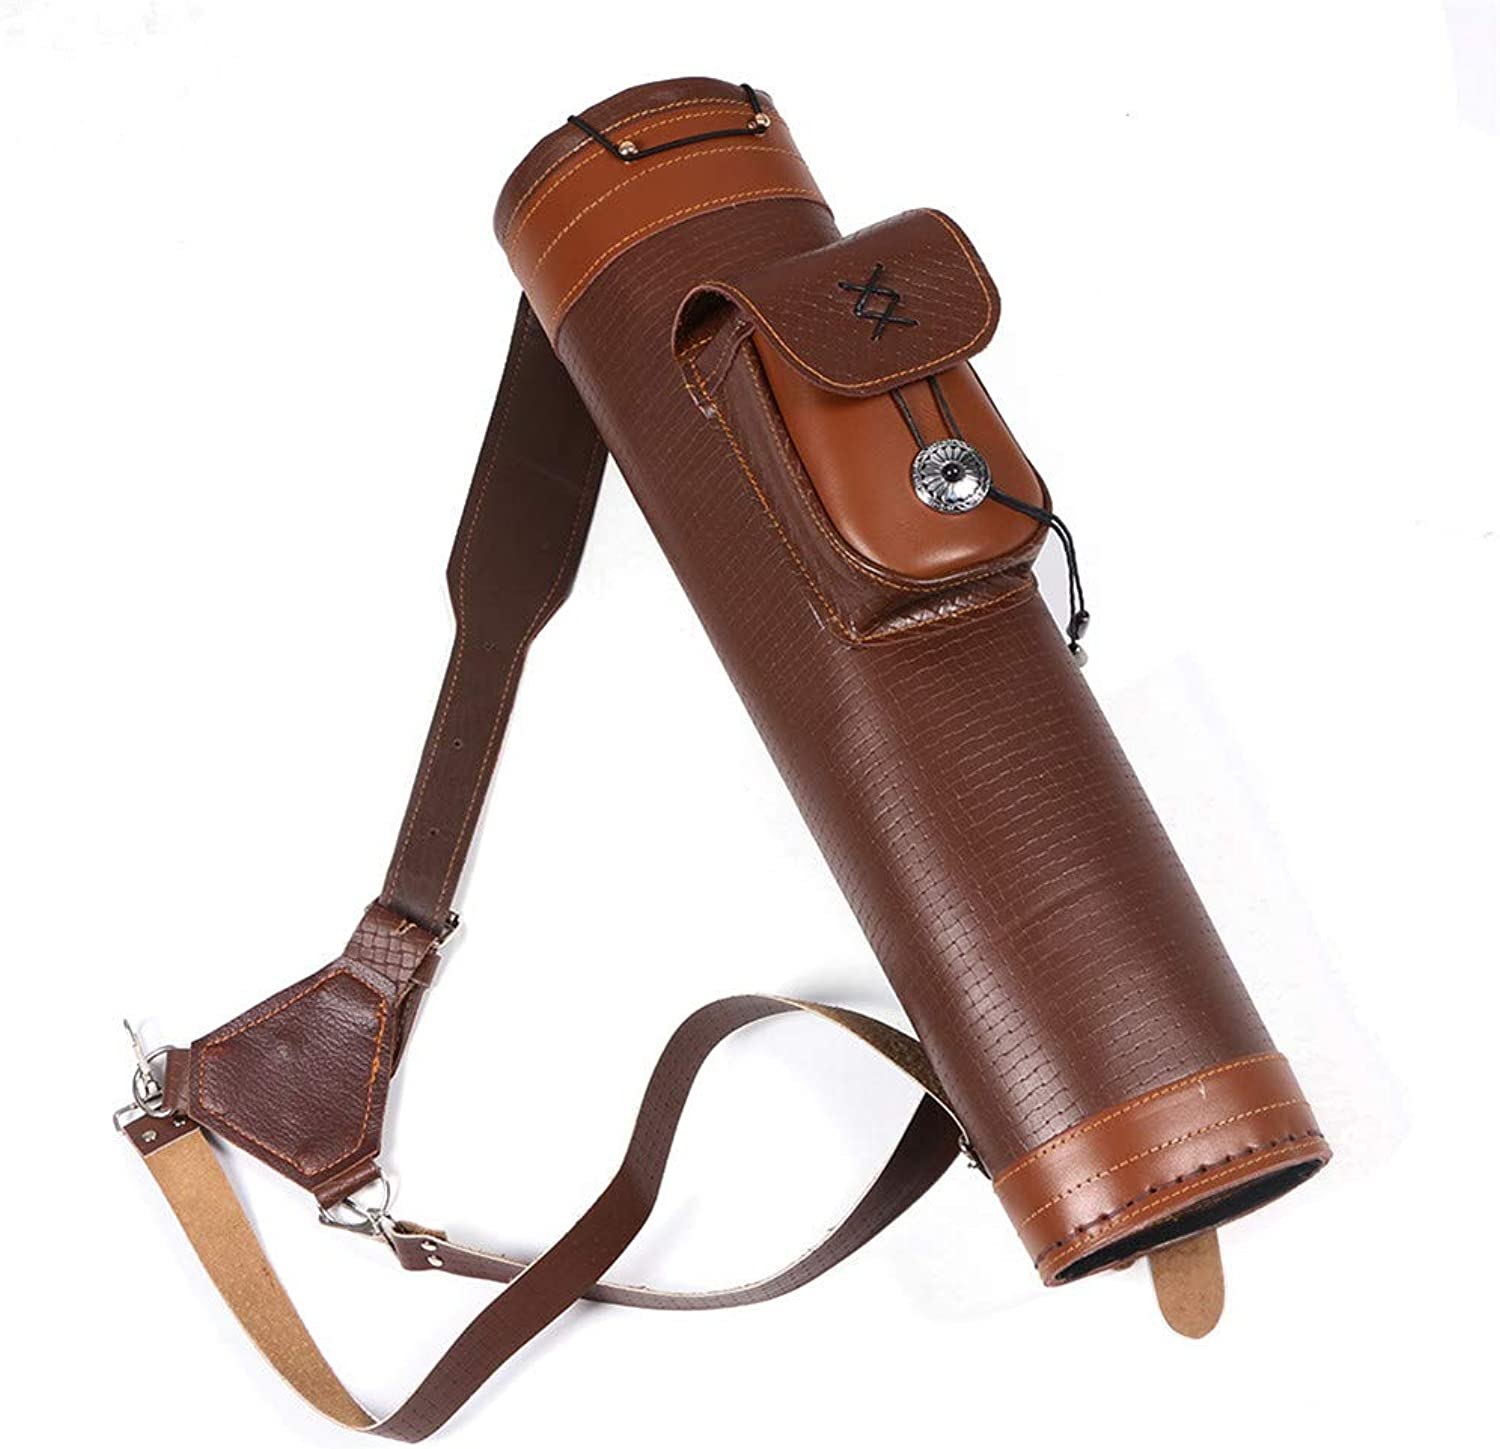 OUYAWEI Portable LargeCapacity Archery Traditional Back Arrow Quiver Leather Hunting Pouch Belt Bag